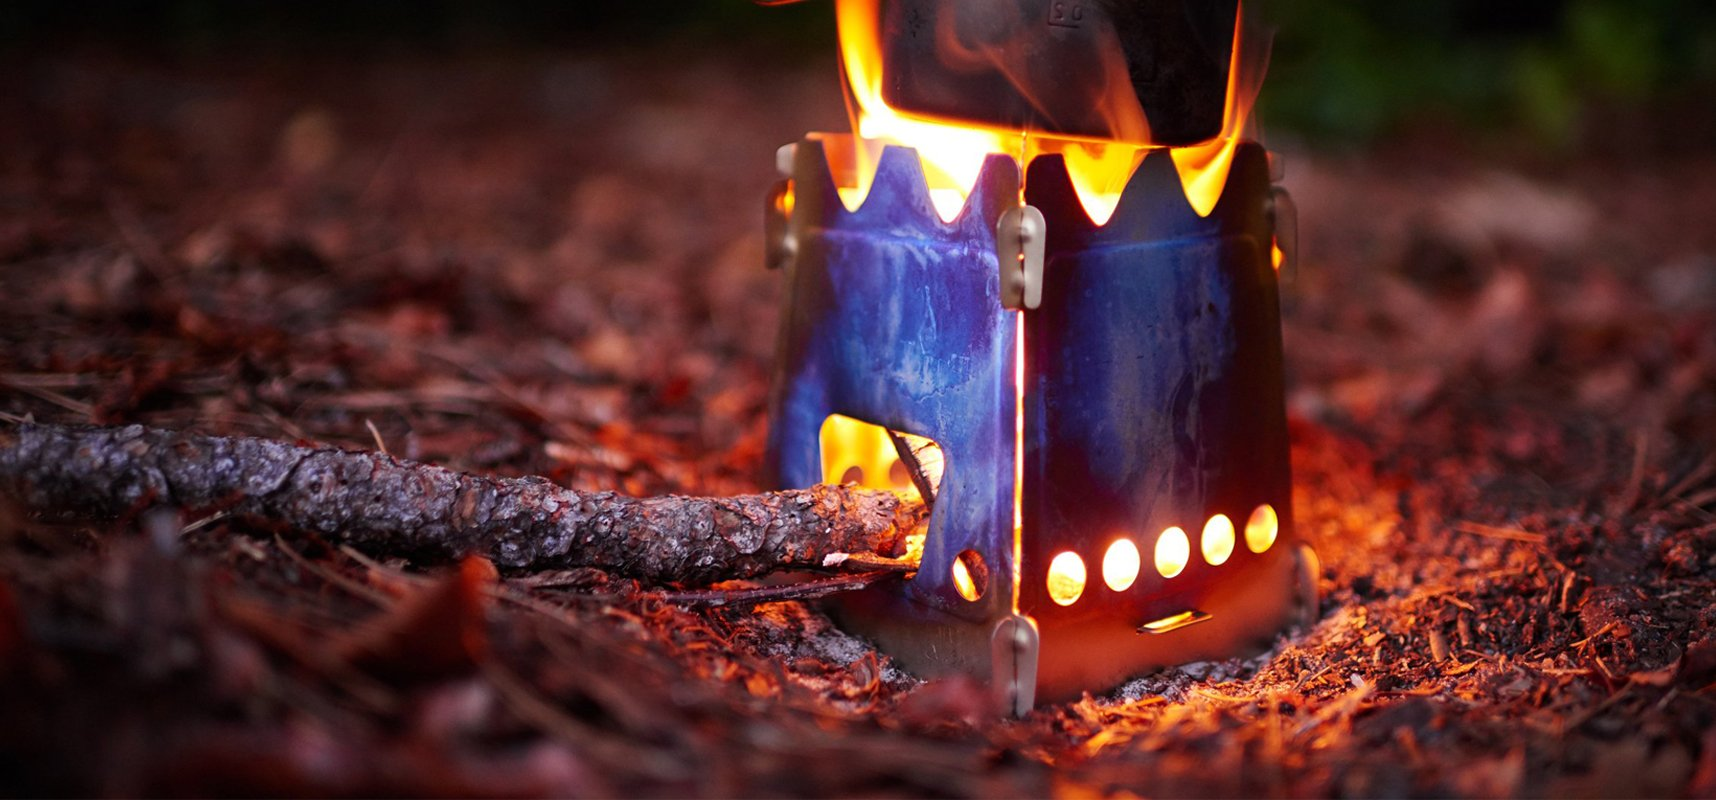 EmberLit - Cooking Equipment for every backpacking trip